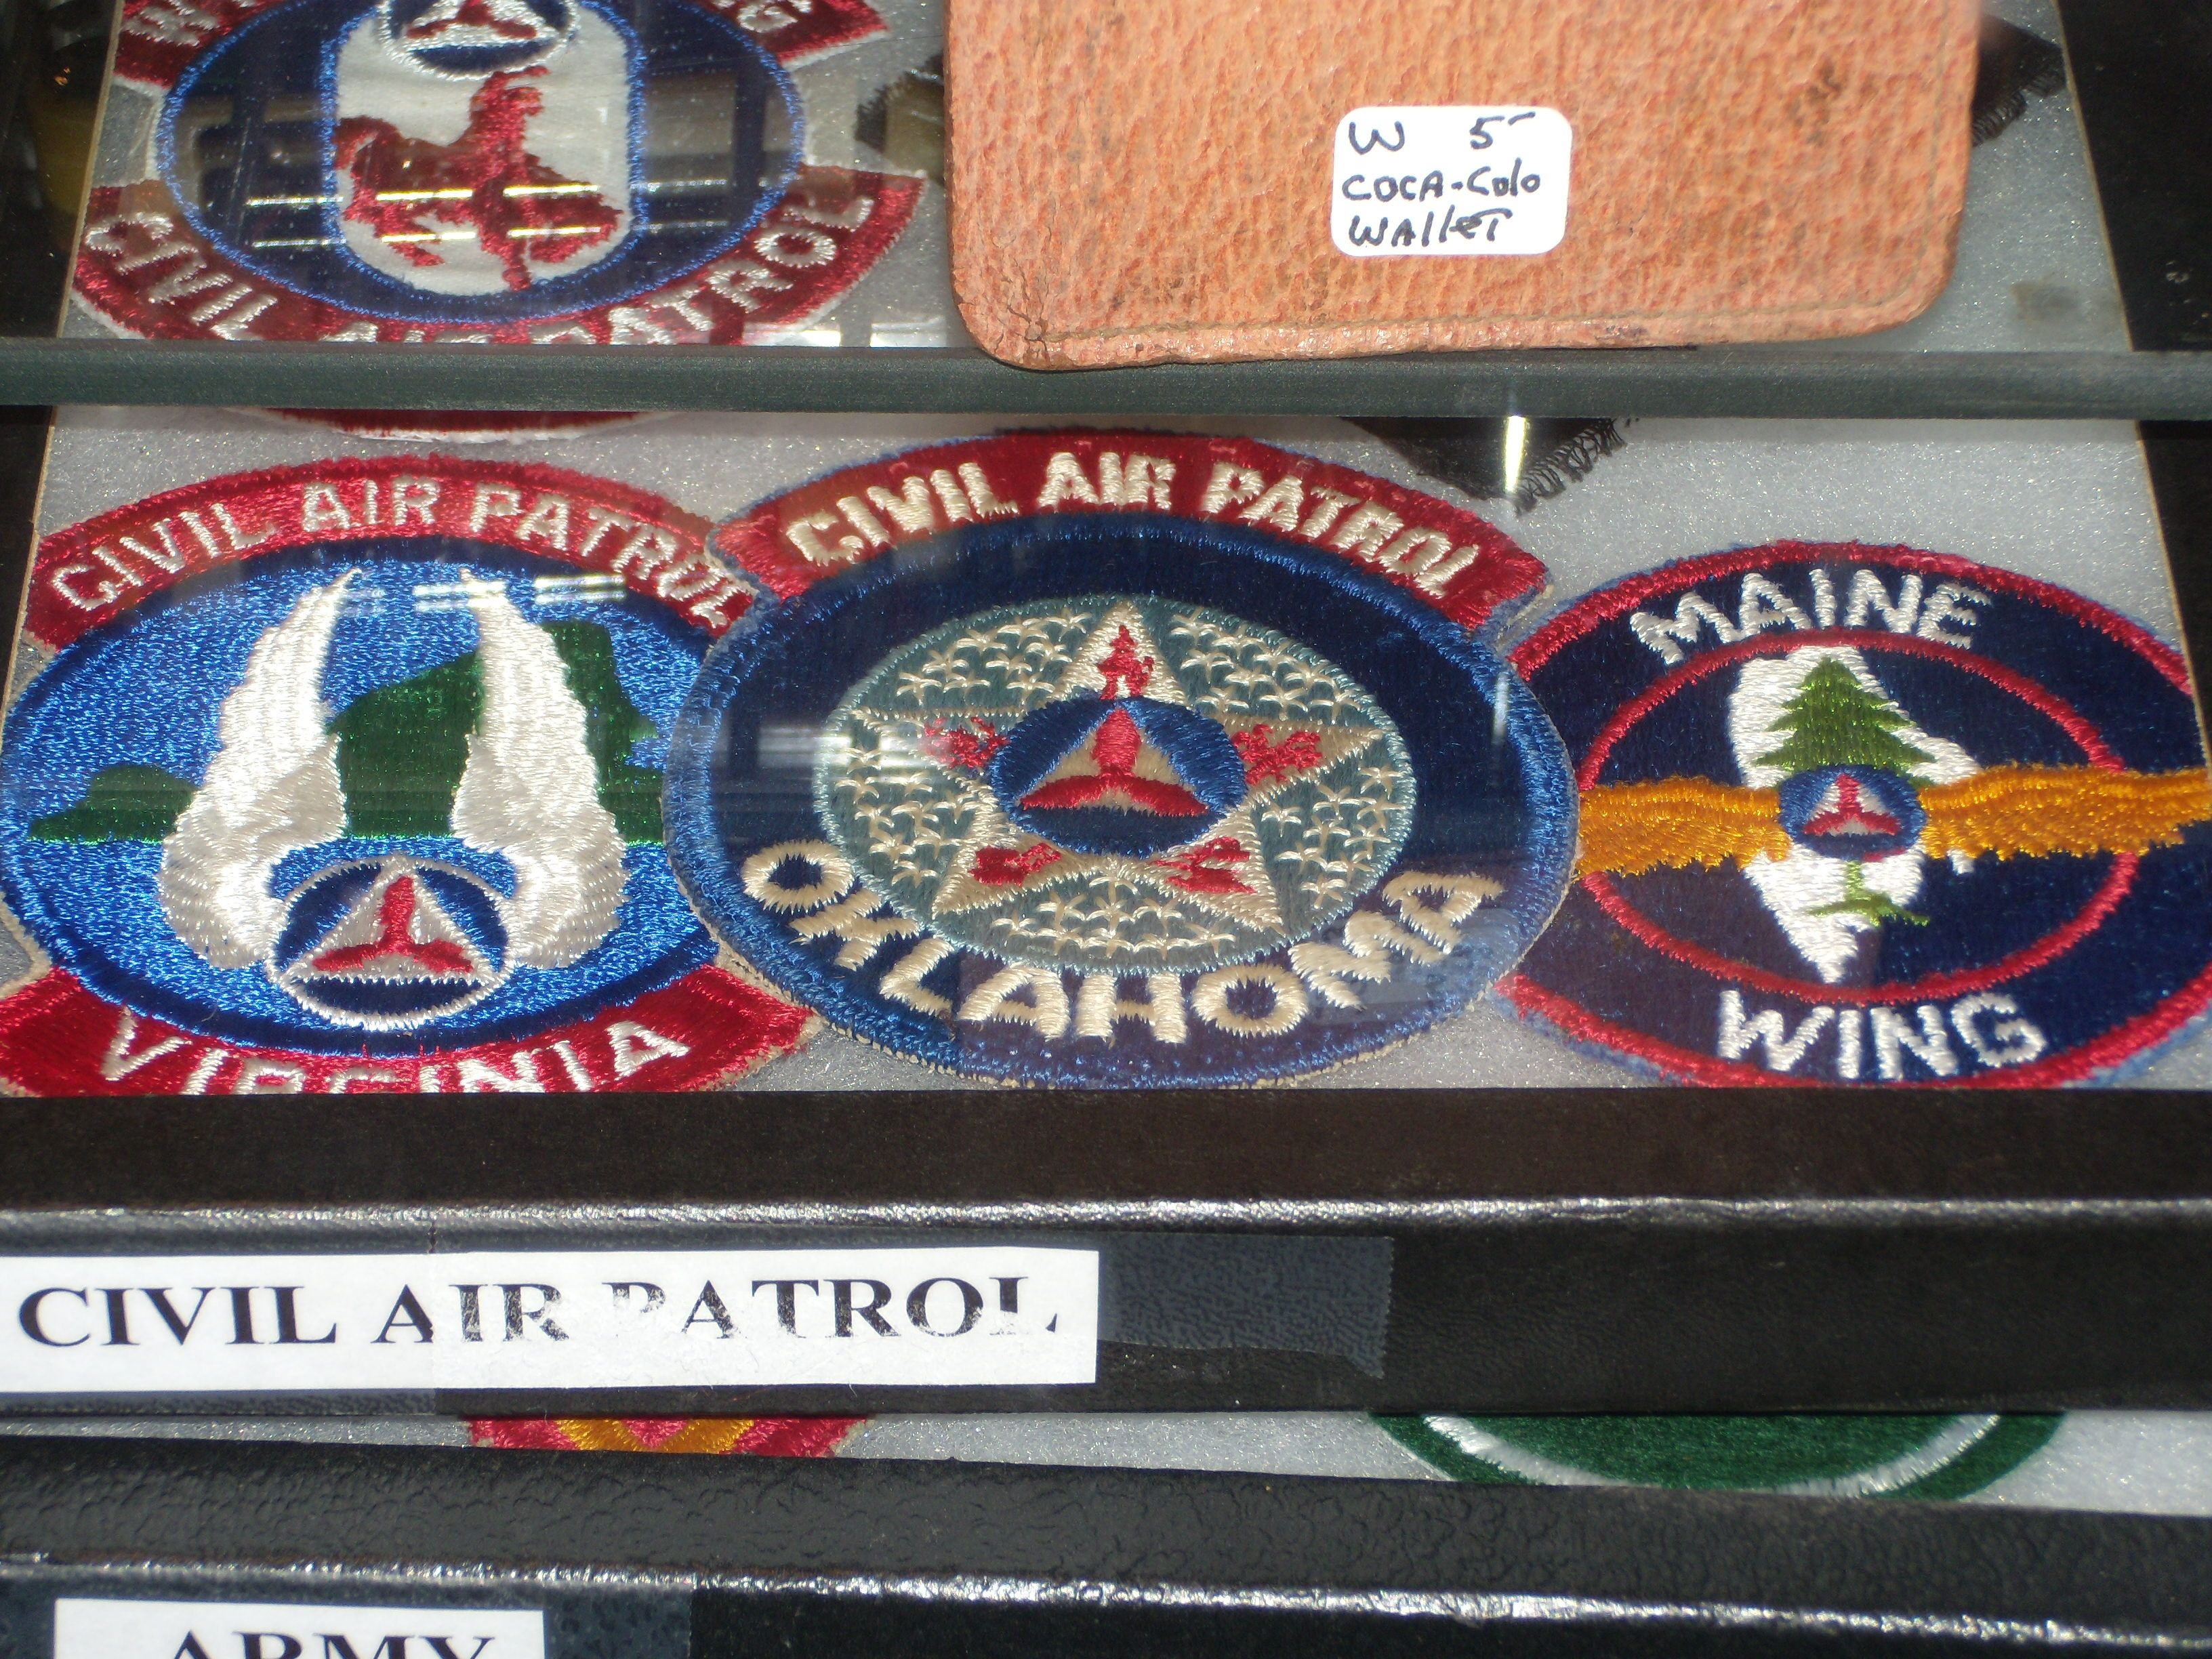 I have Civil Air patrol patches from about every state